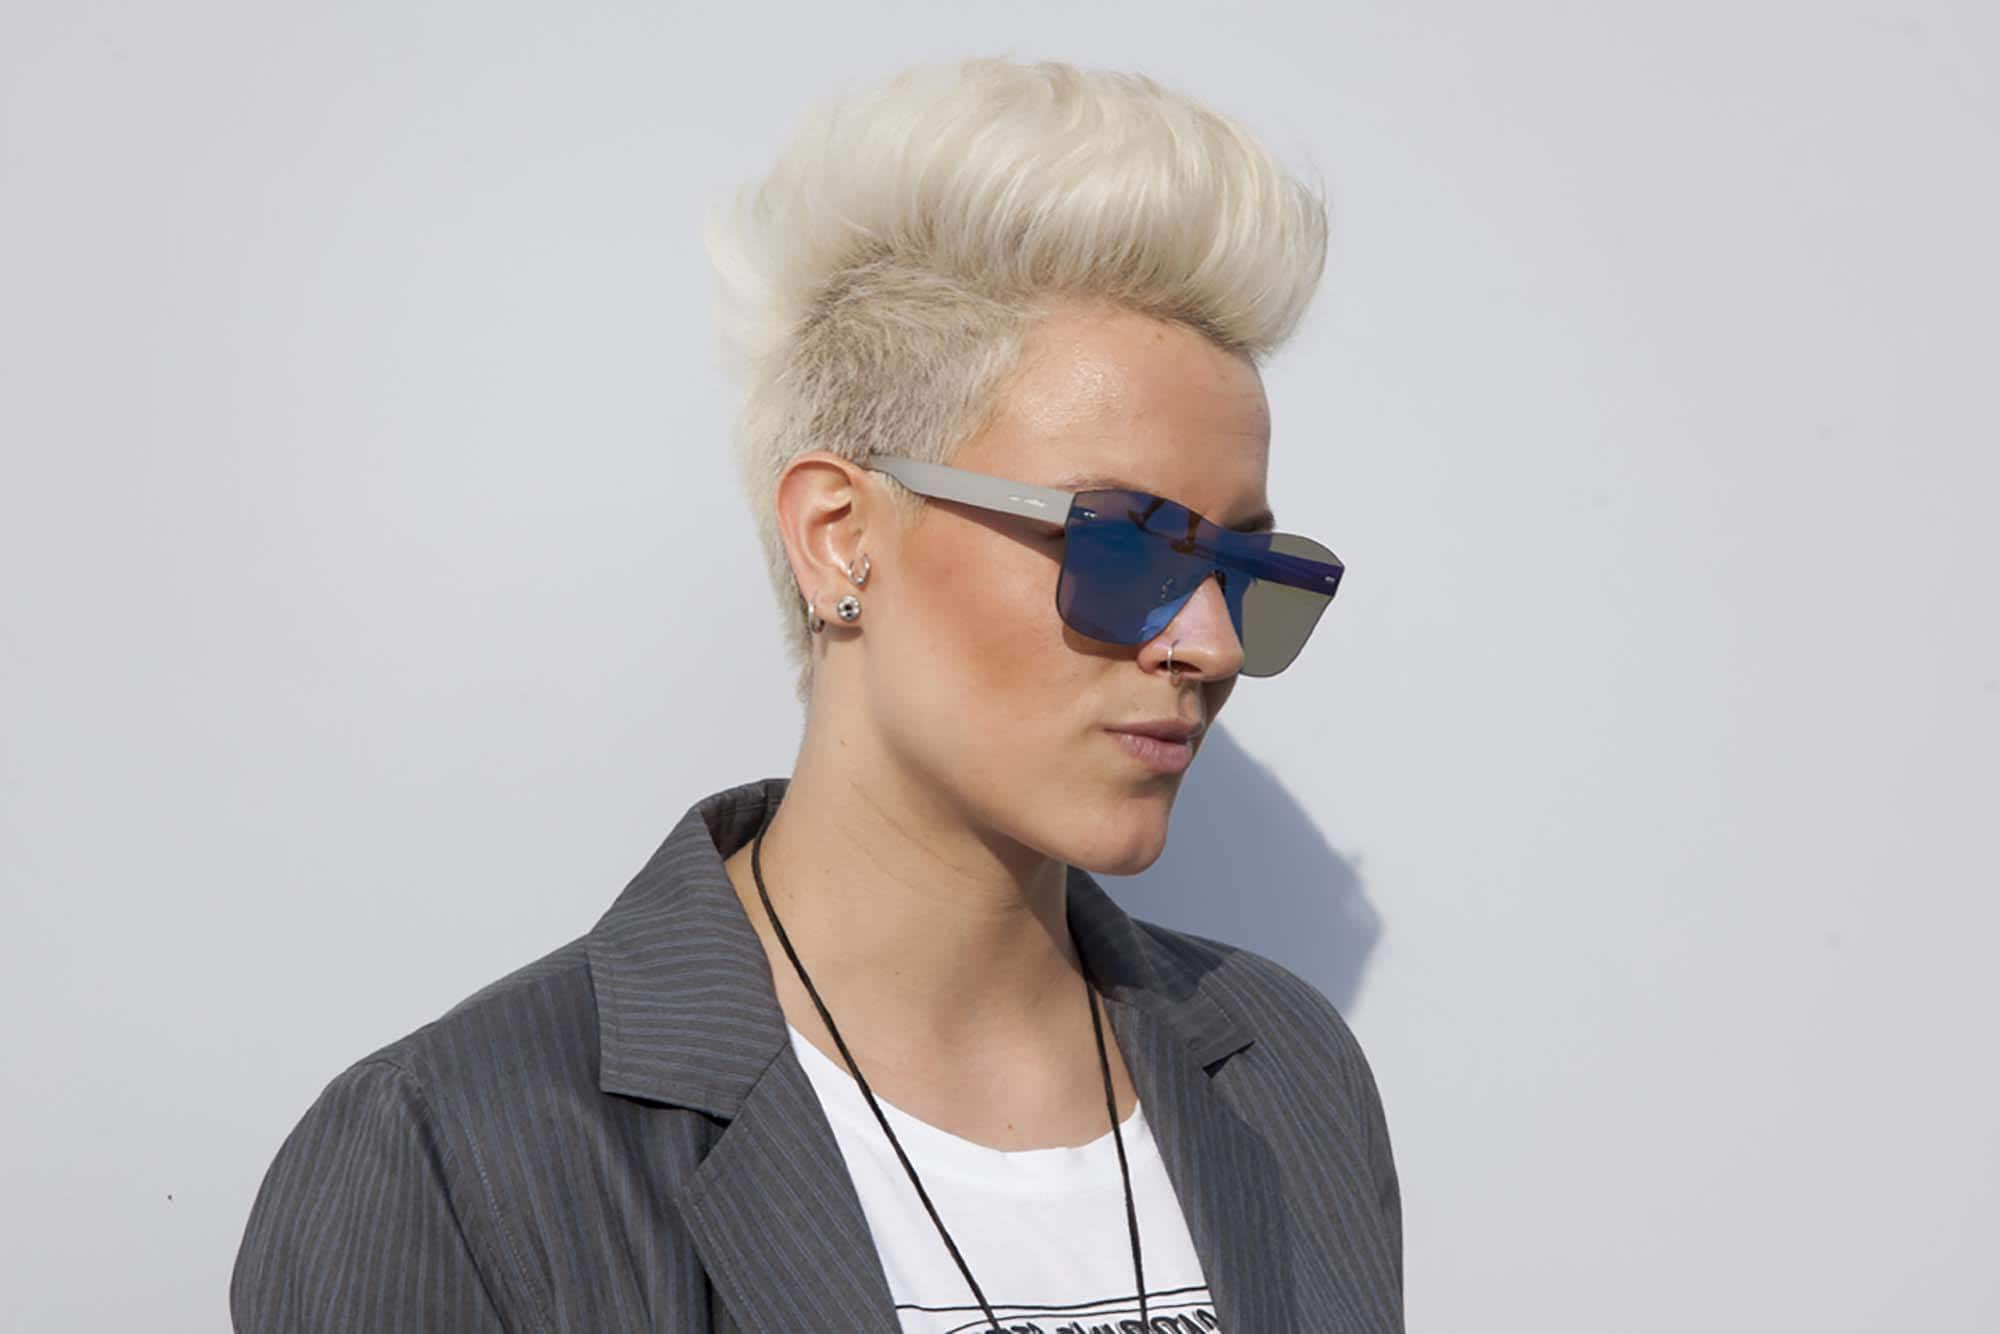 Short Spiky Haircuts: 5 Edgy Looks You'll Love Intended For Recent Spikey Mohawk Hairstyles (Gallery 15 of 20)